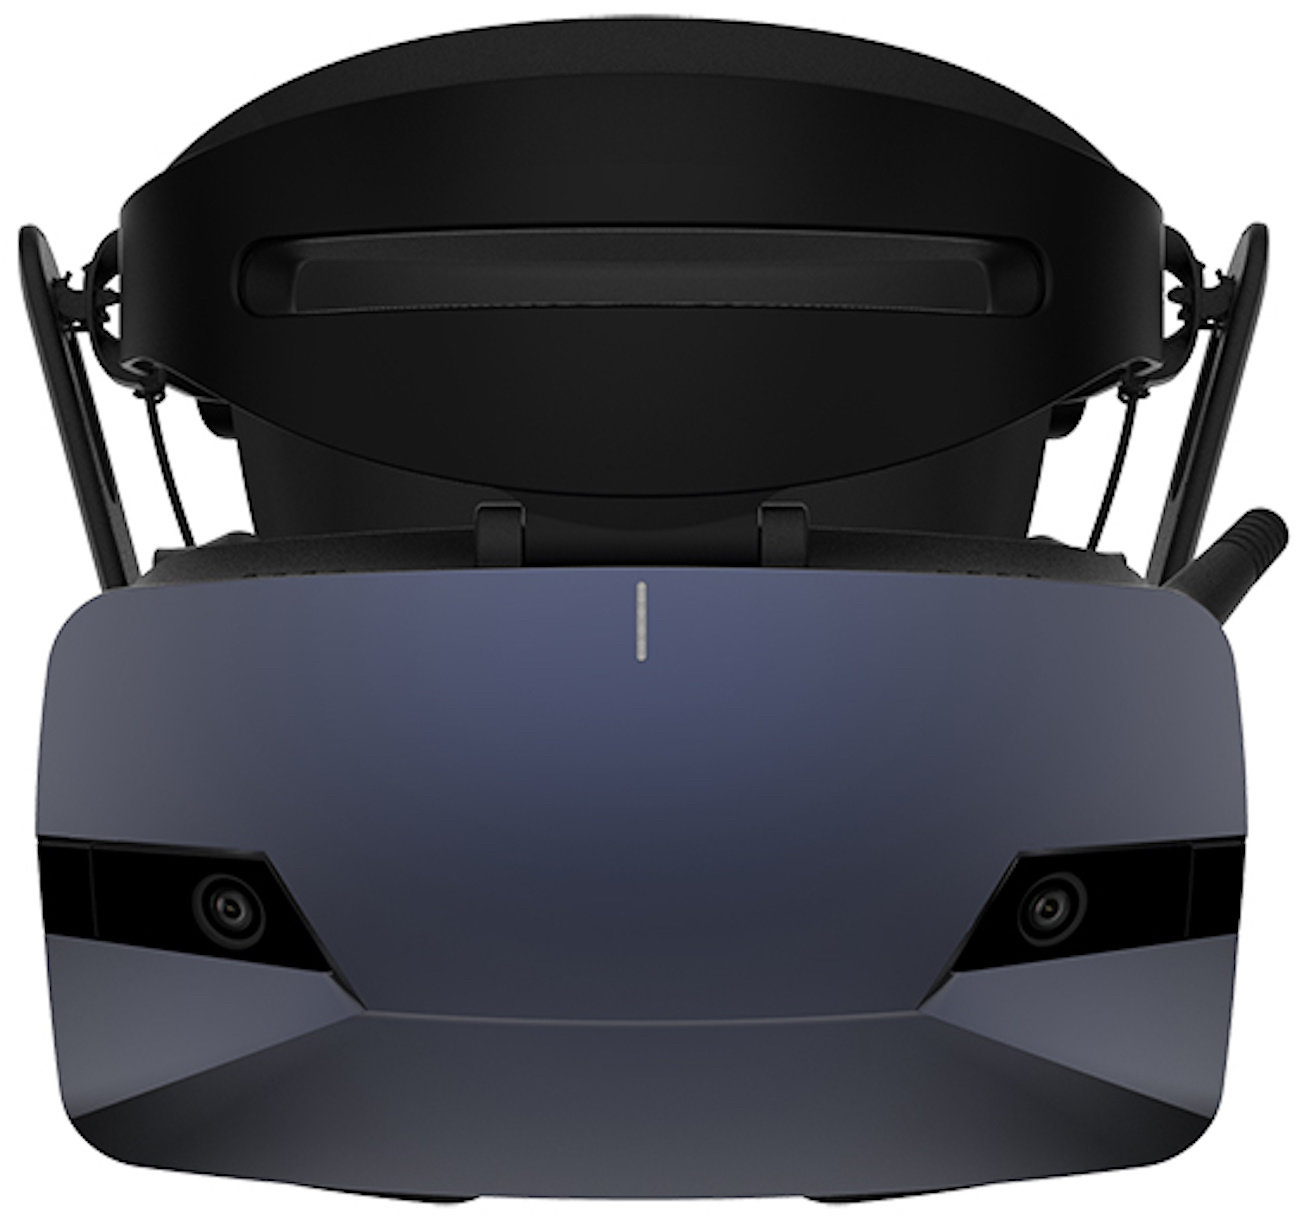 Acer Windows Mixed Reality Headset OJO 500 + pohybové ovladače